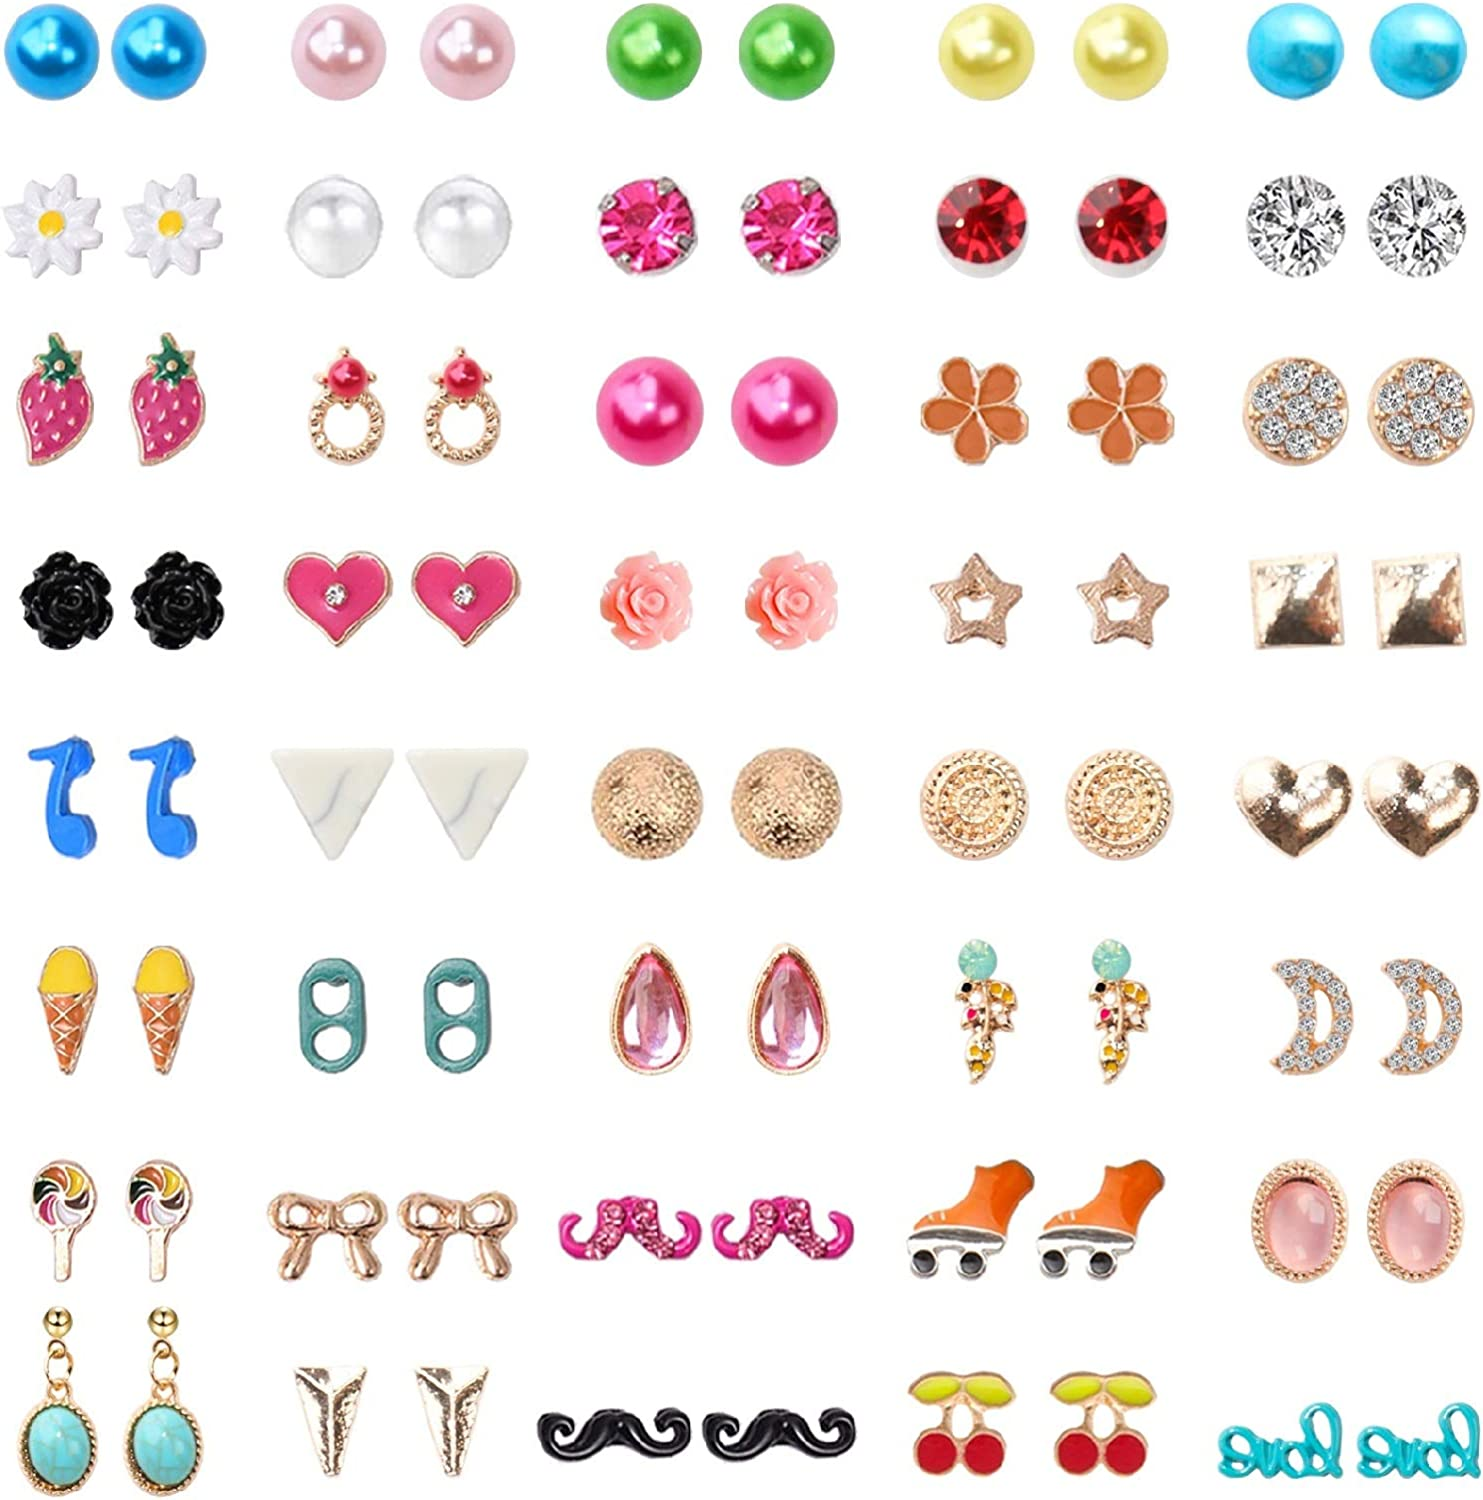 100% quality warranty NEWITIN 40 Pairs Colorful Cute Stud Earrings Earr Hypoallergenic wholesale